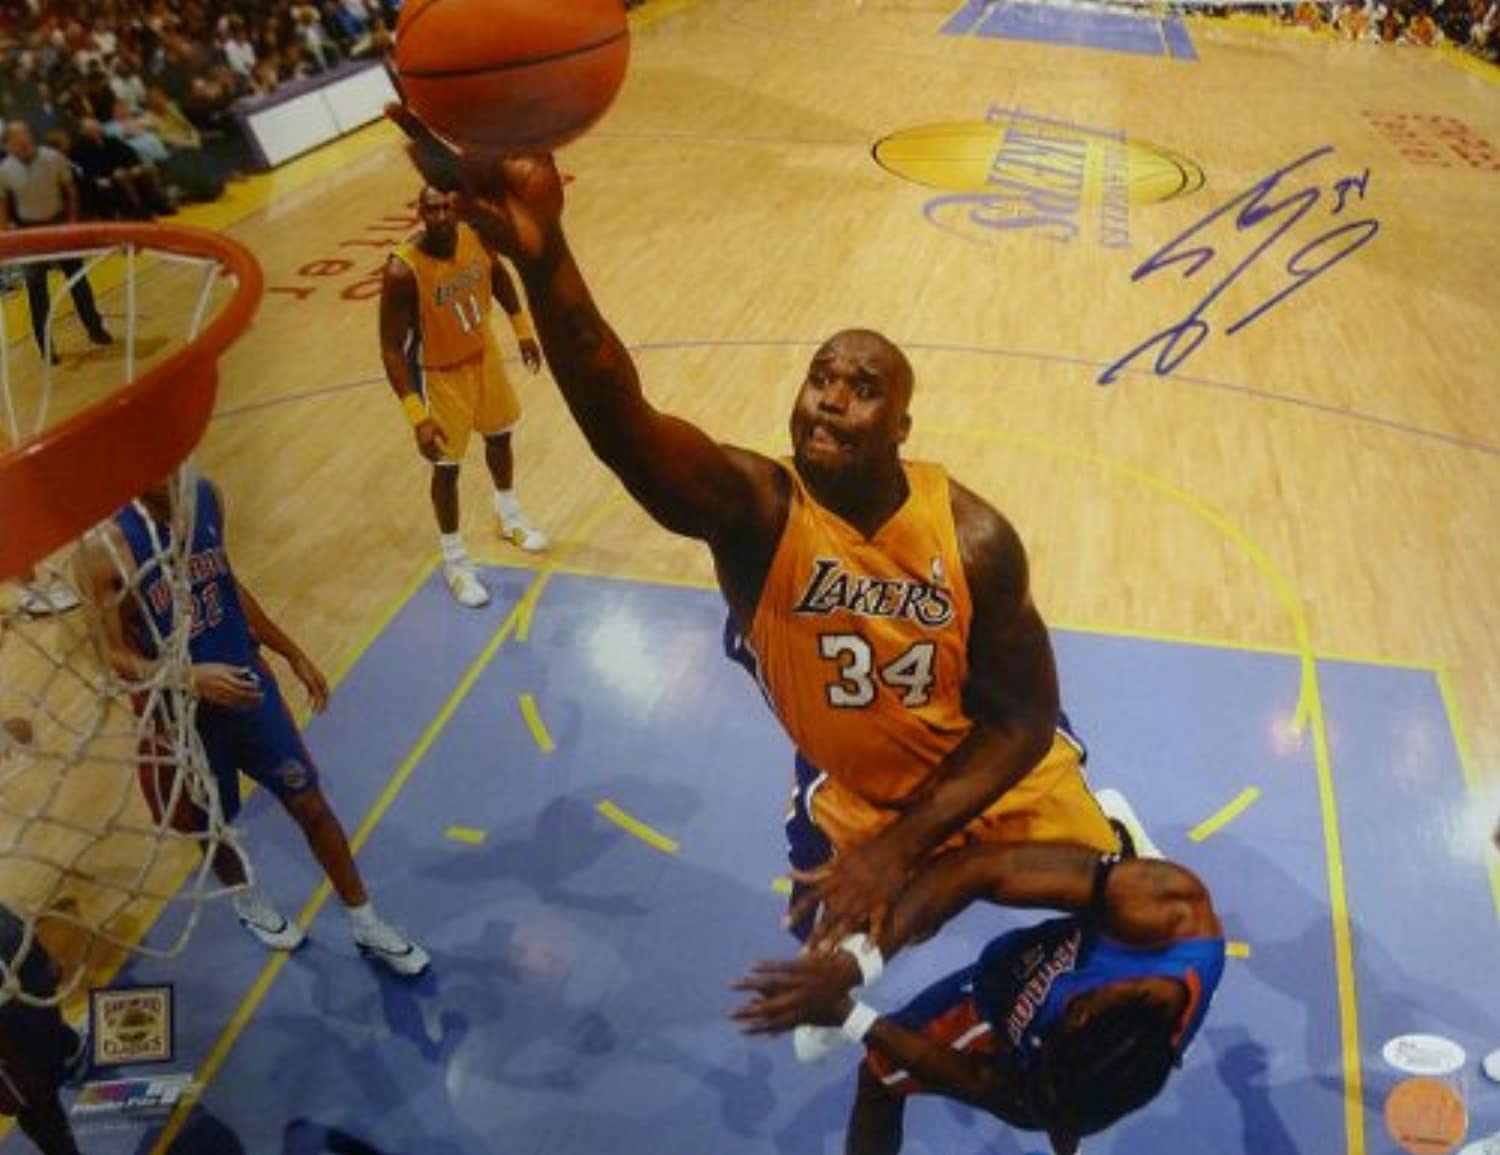 Shaquille O'Neal Autographed Los Angeles Lakers (Layup) 16x20 Photo JSA